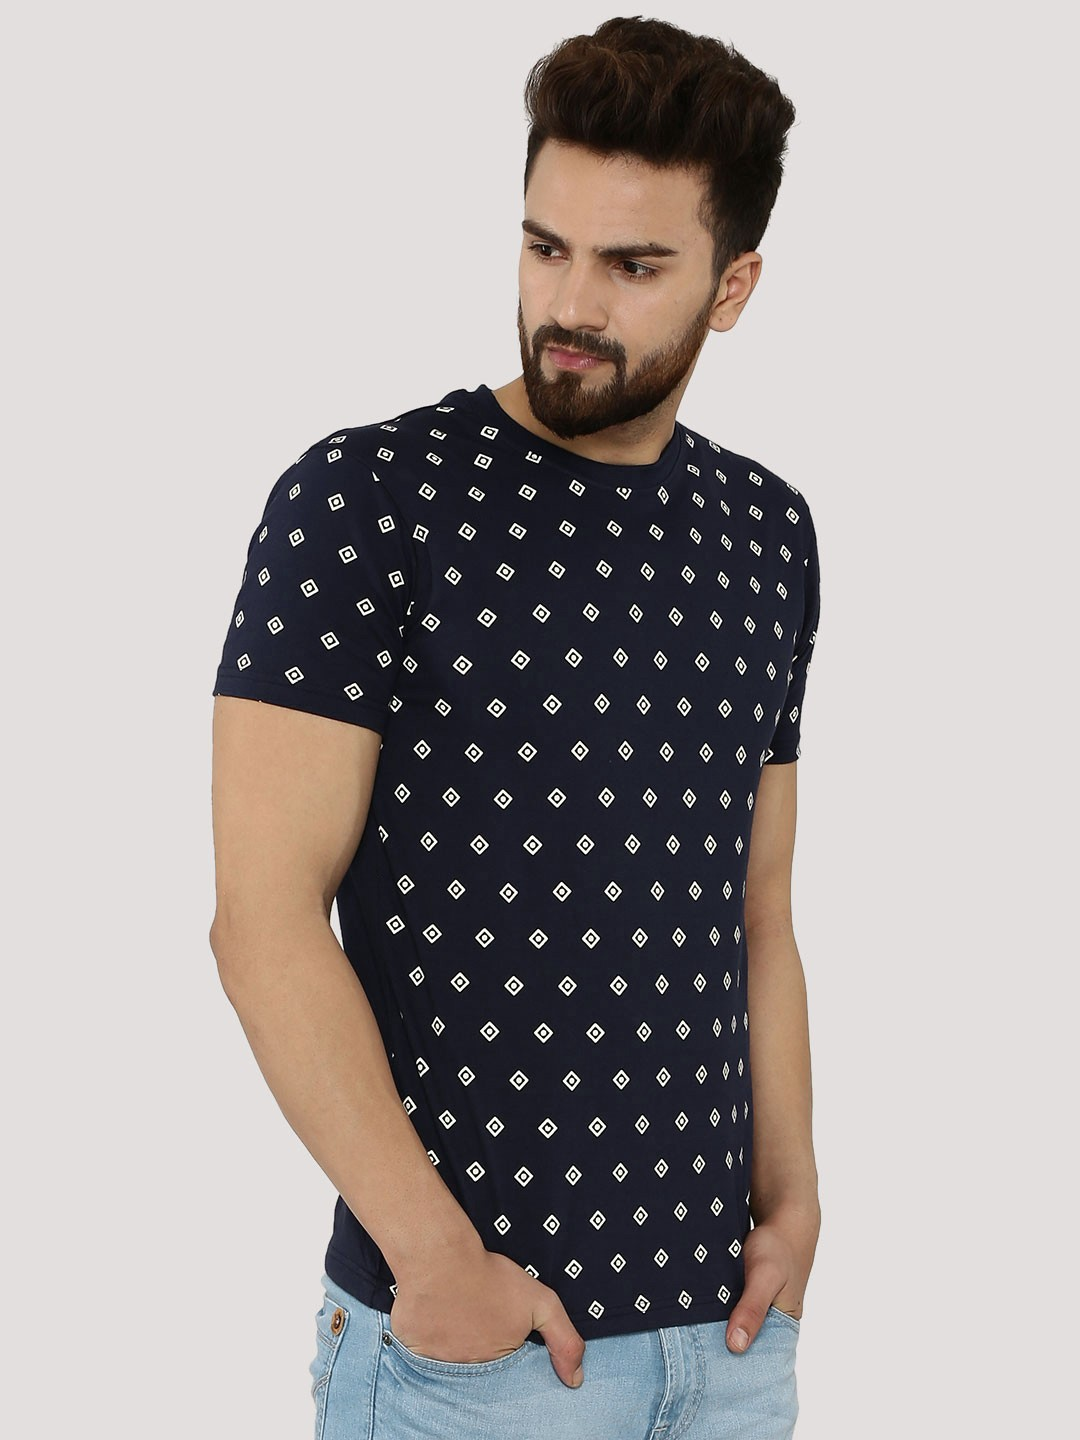 Shop t shirts online india